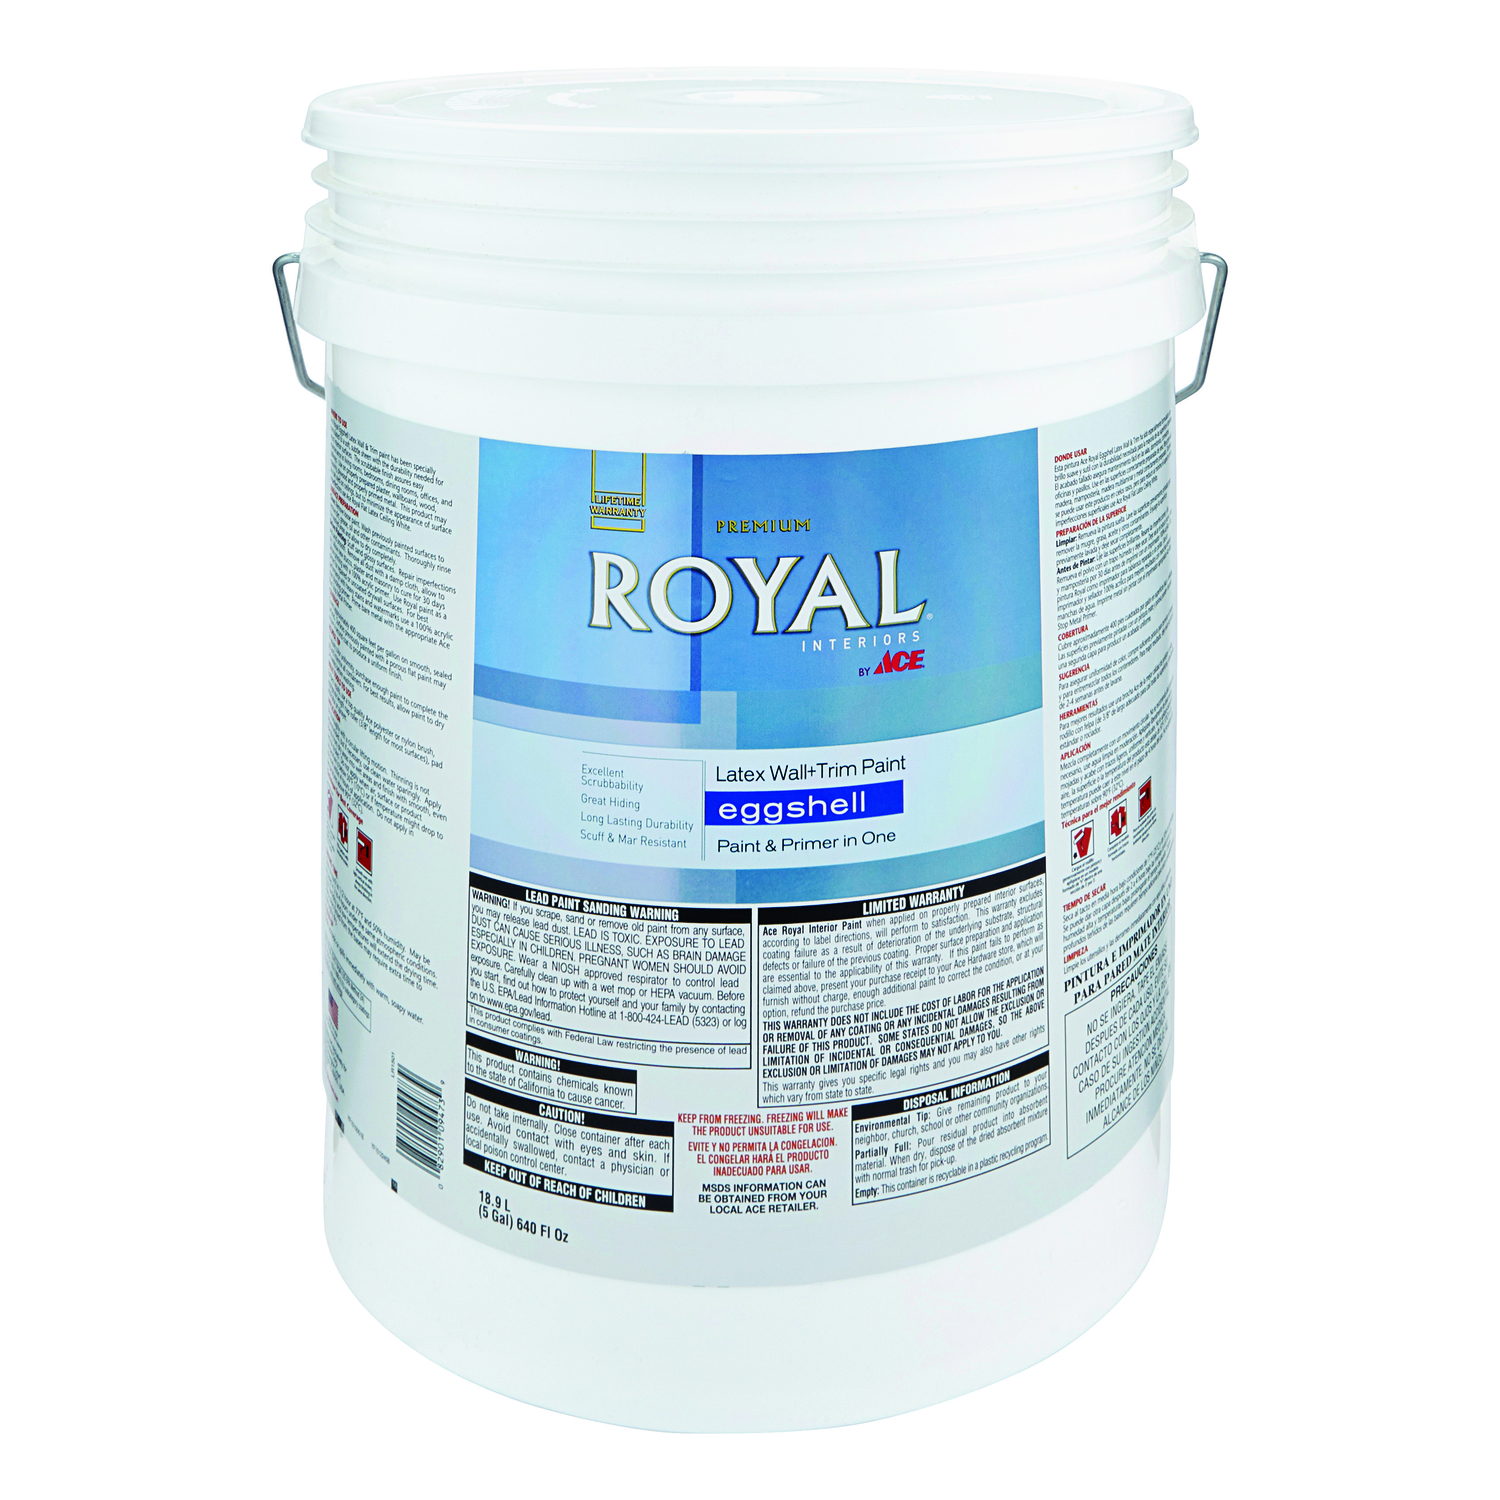 Ace  Royal  Eggshell  Mid-Tone High-hide  Vinyl Acetate/Ethylene  Interior Latex Wall+Trim Paint  5